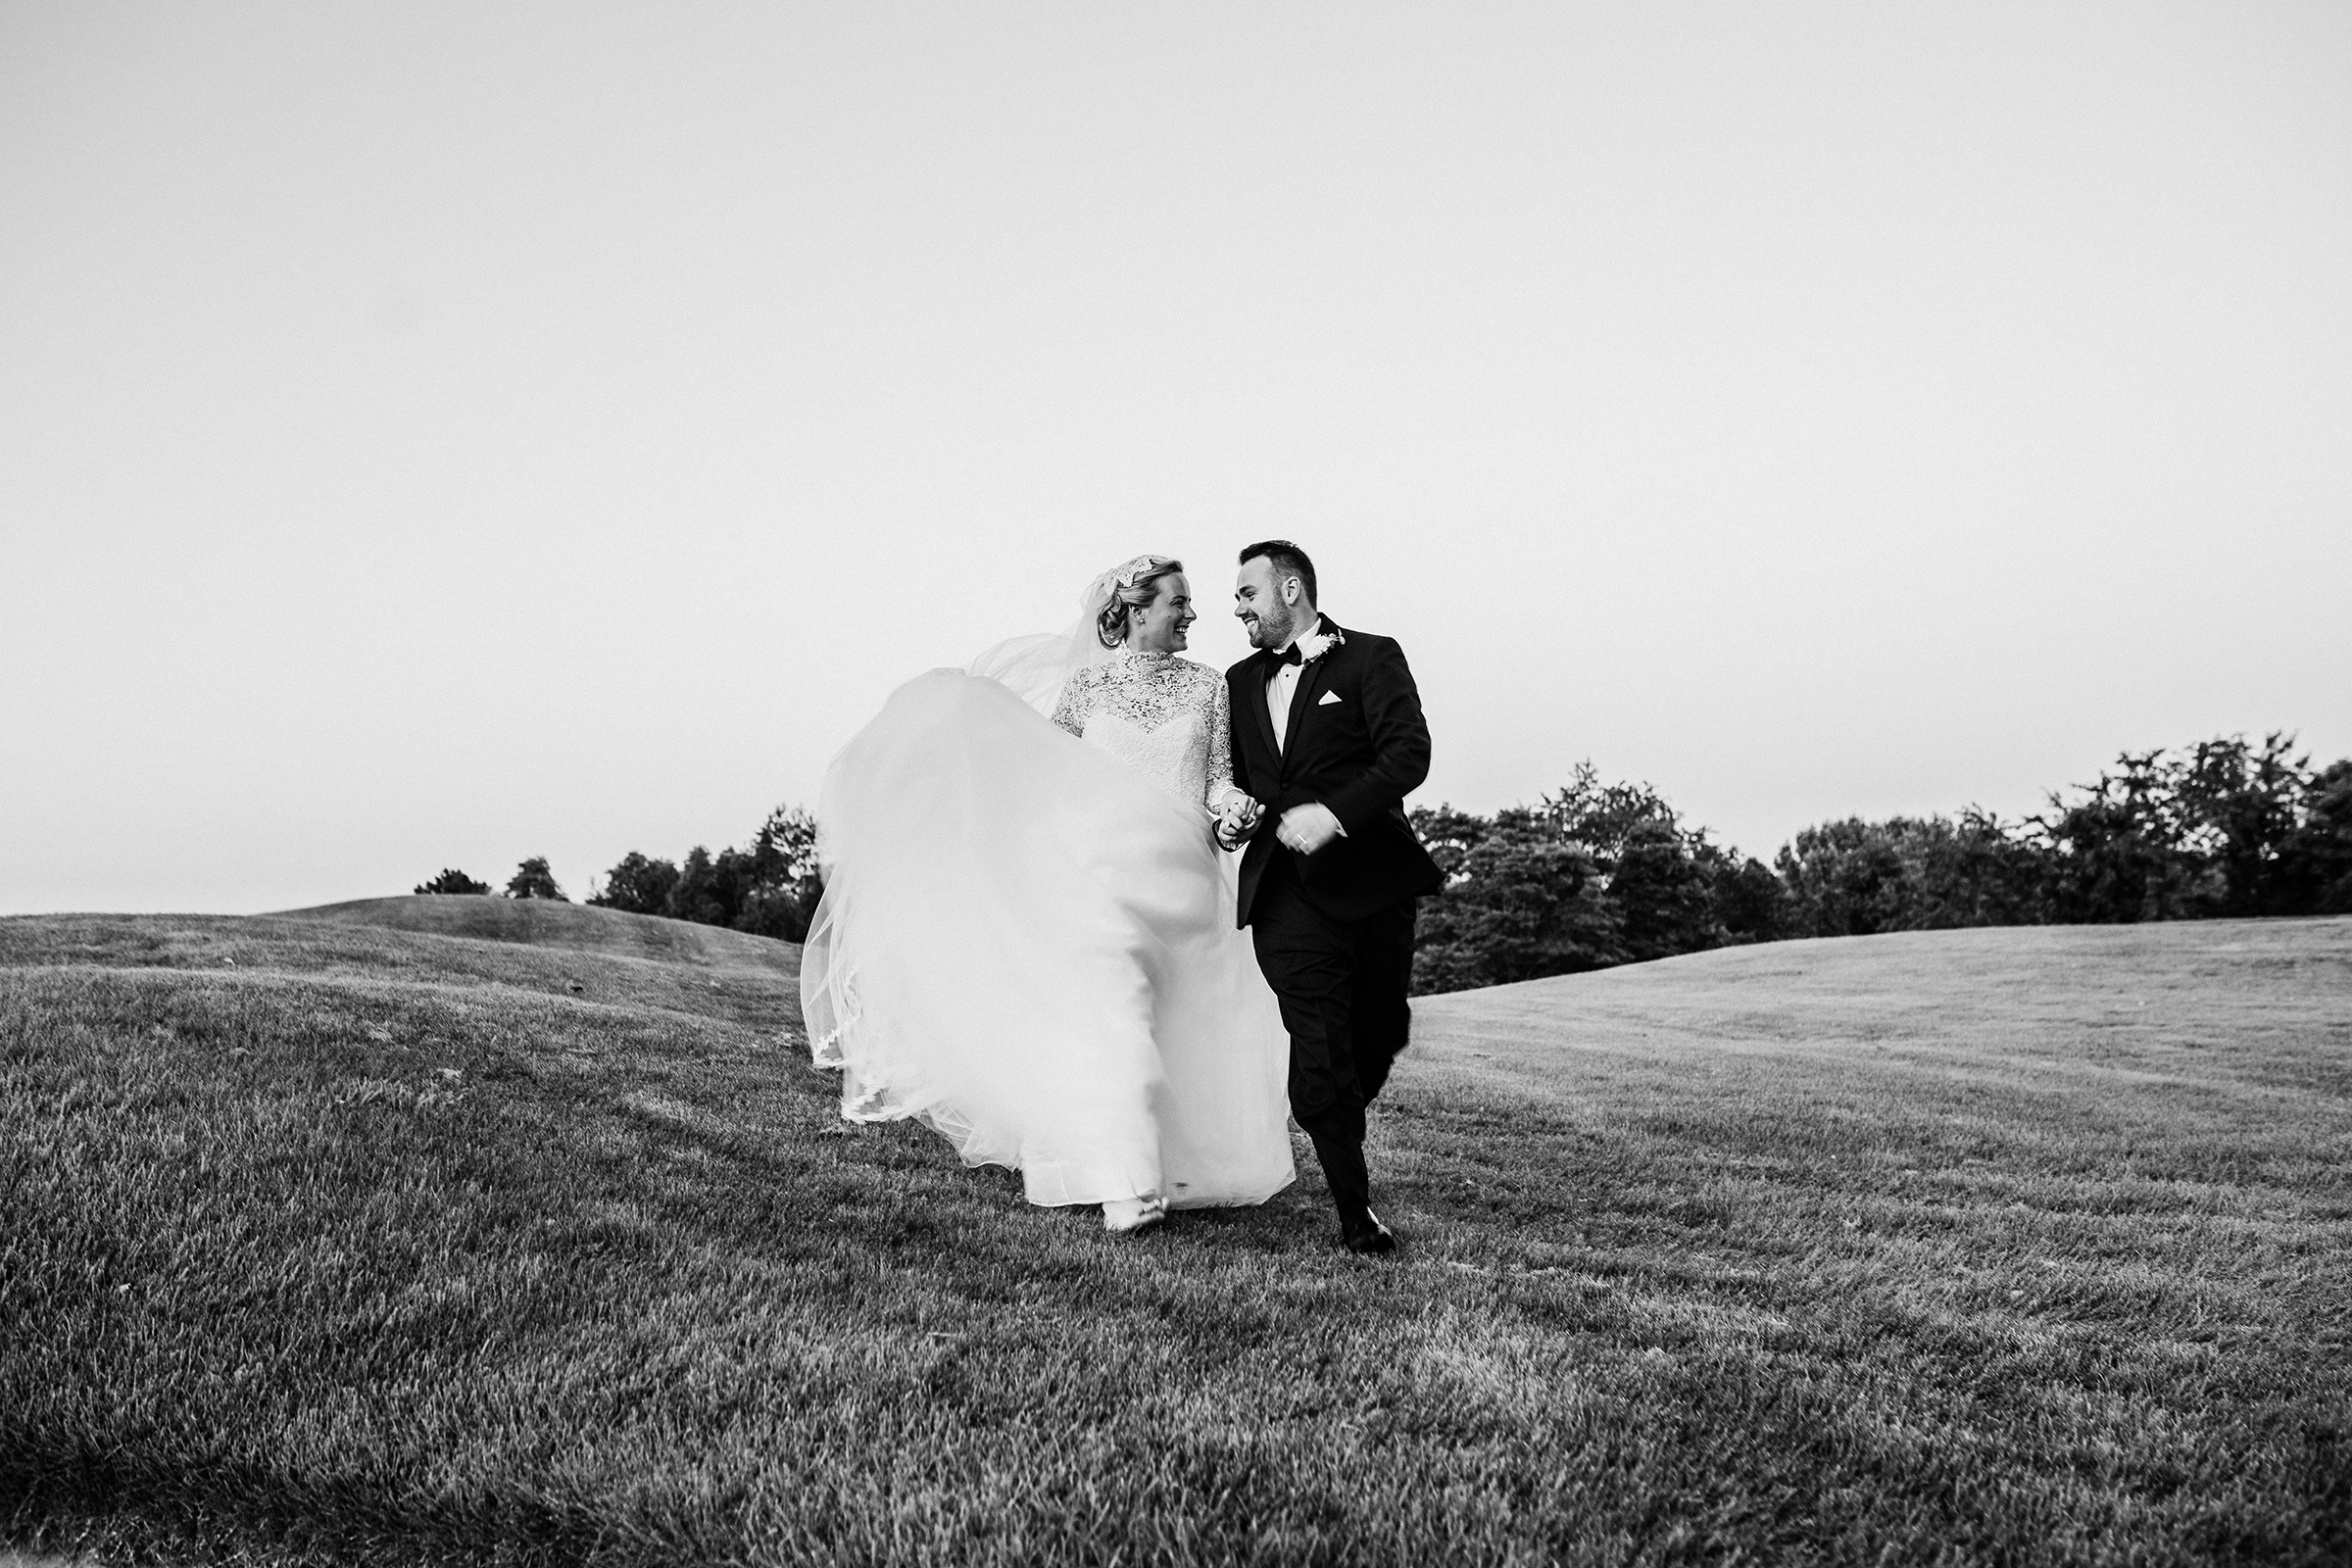 Couple portrait in field - photo by Kelli Wilke Photography